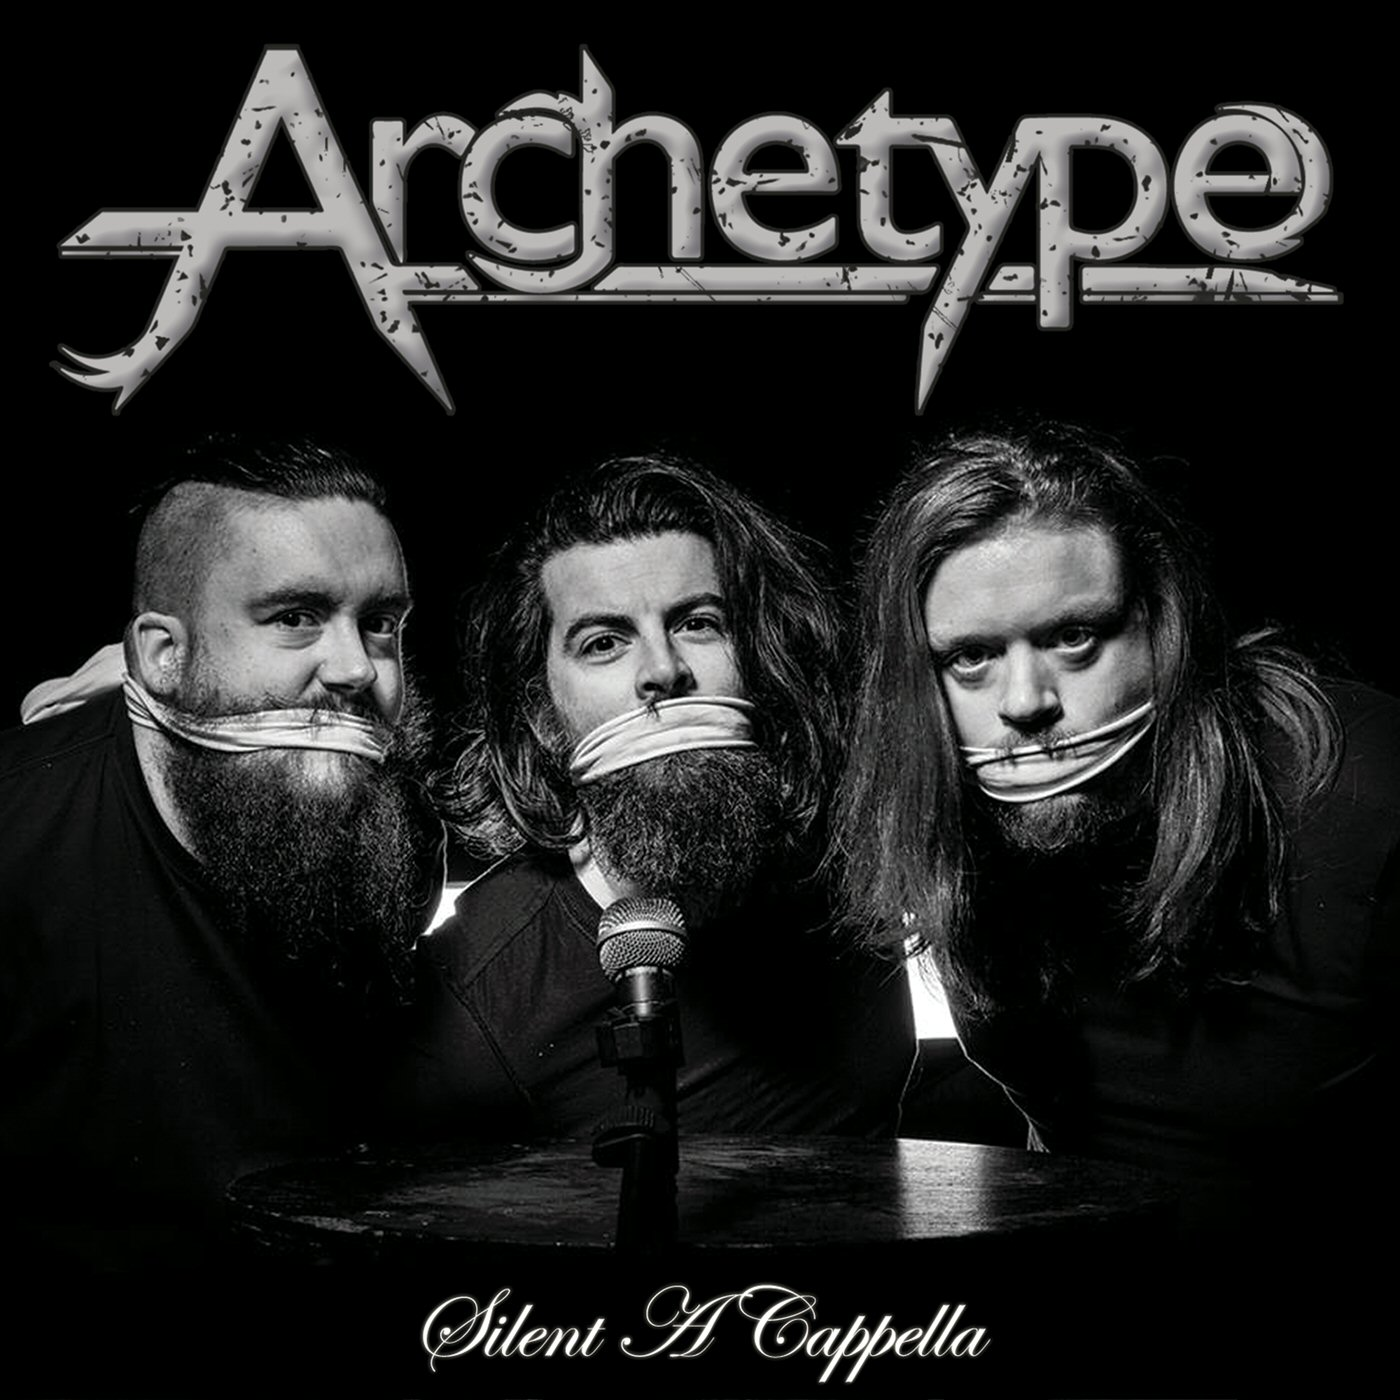 archetype silent a cappella